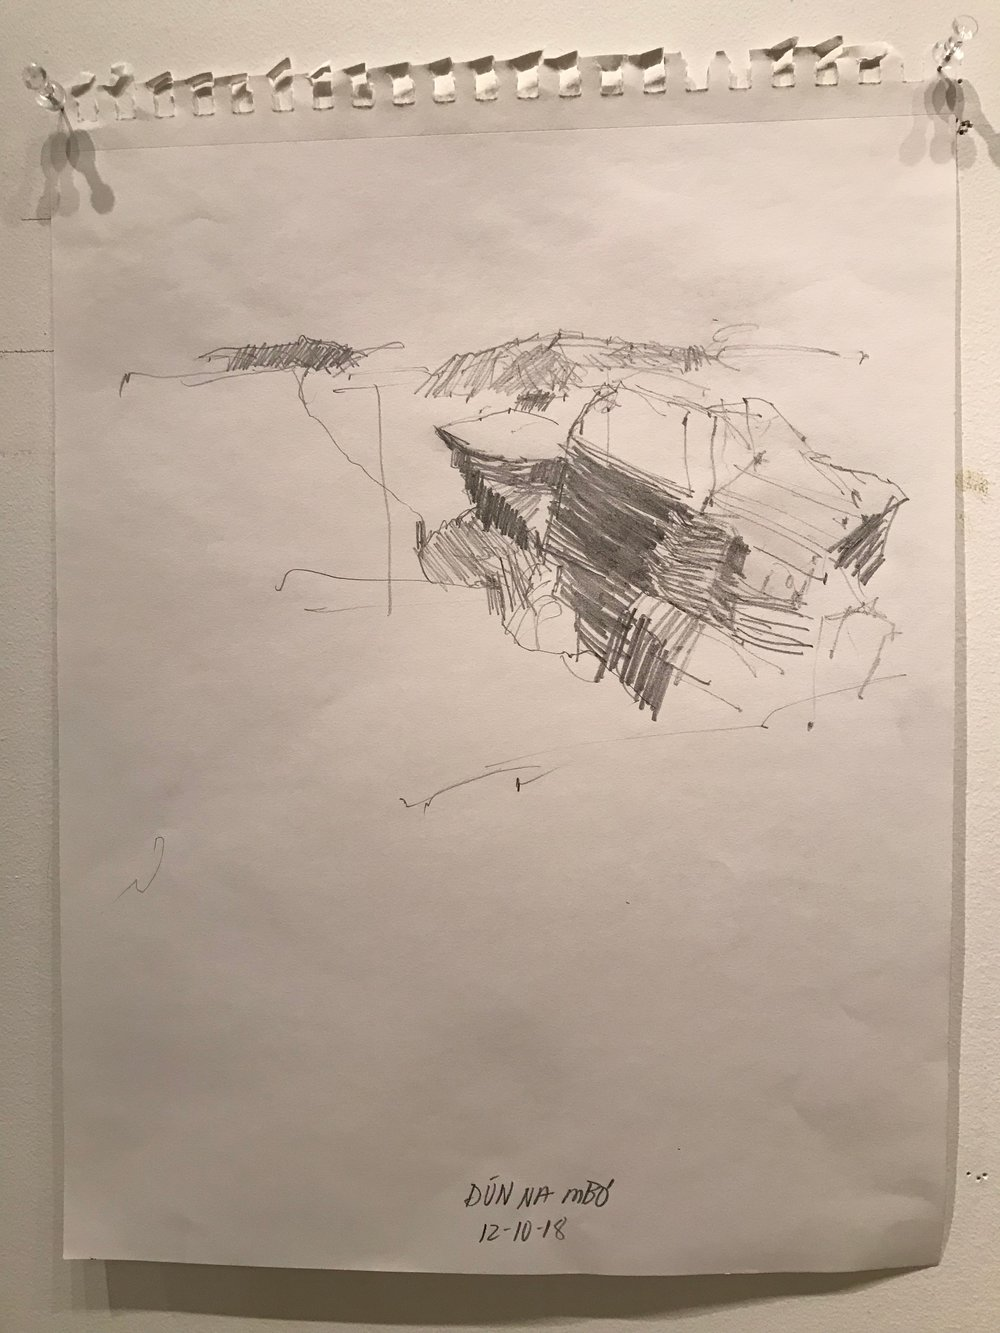 One of my sketches